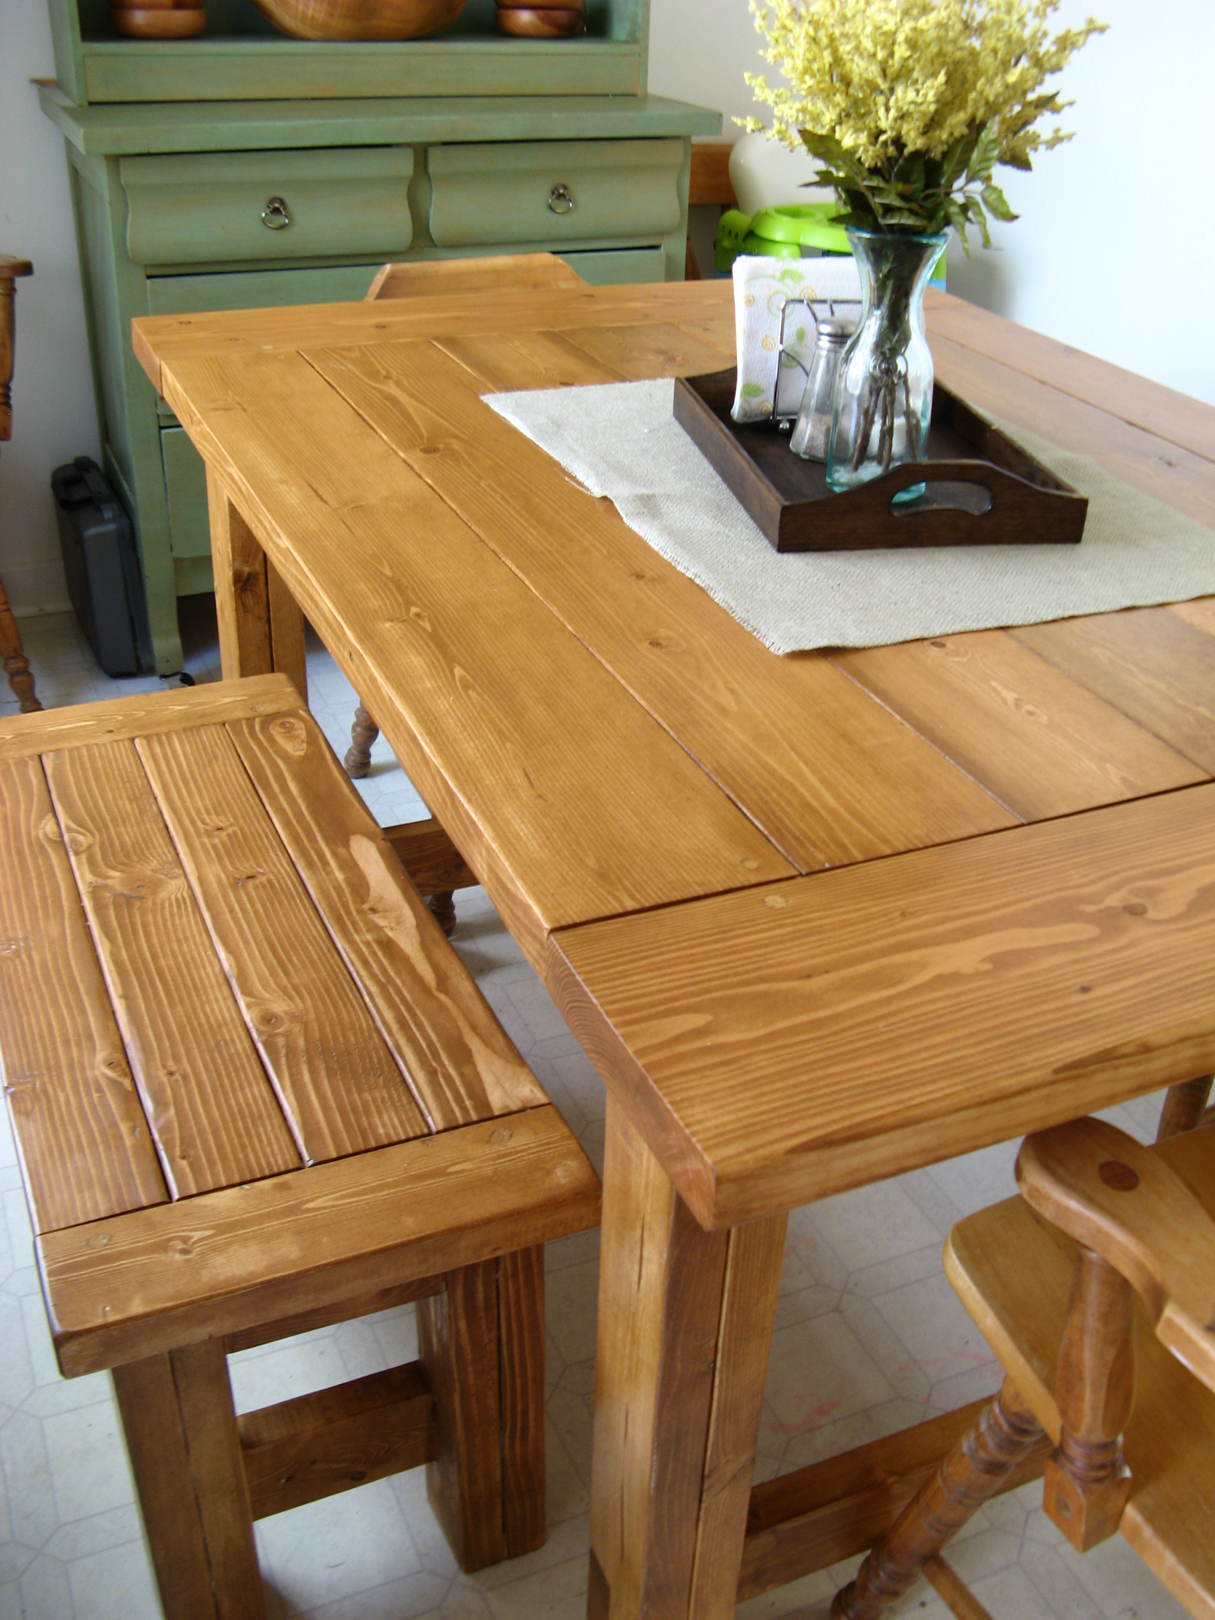 Ana White Farmhouse Table Amp Bench Diy Projects